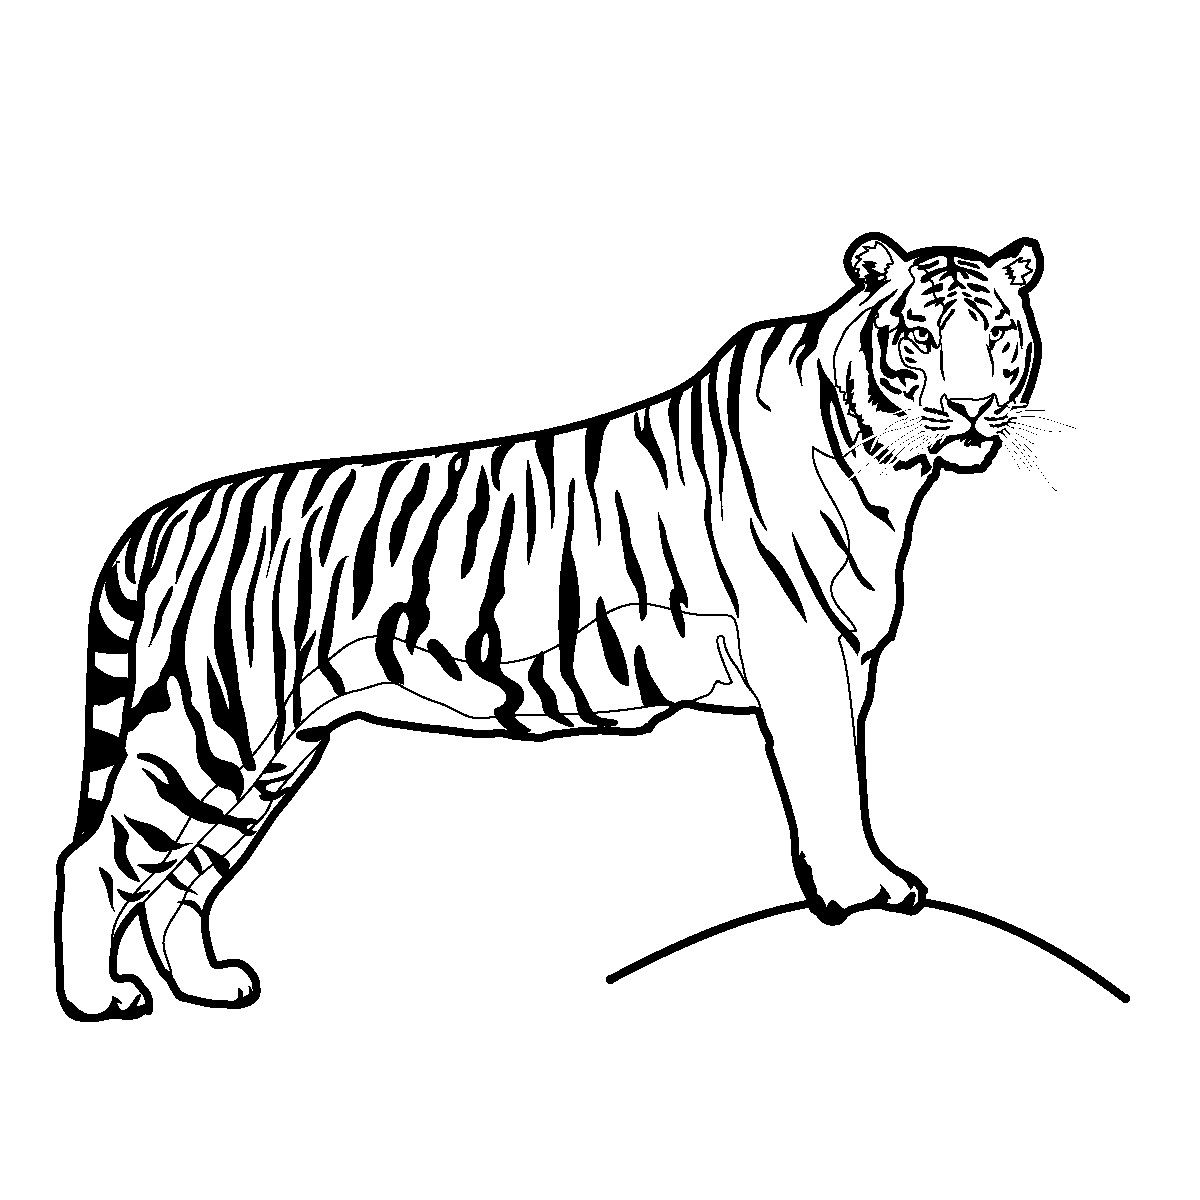 Exercise Free Printable Tiger Coloring Pages For Kids | Kids ...